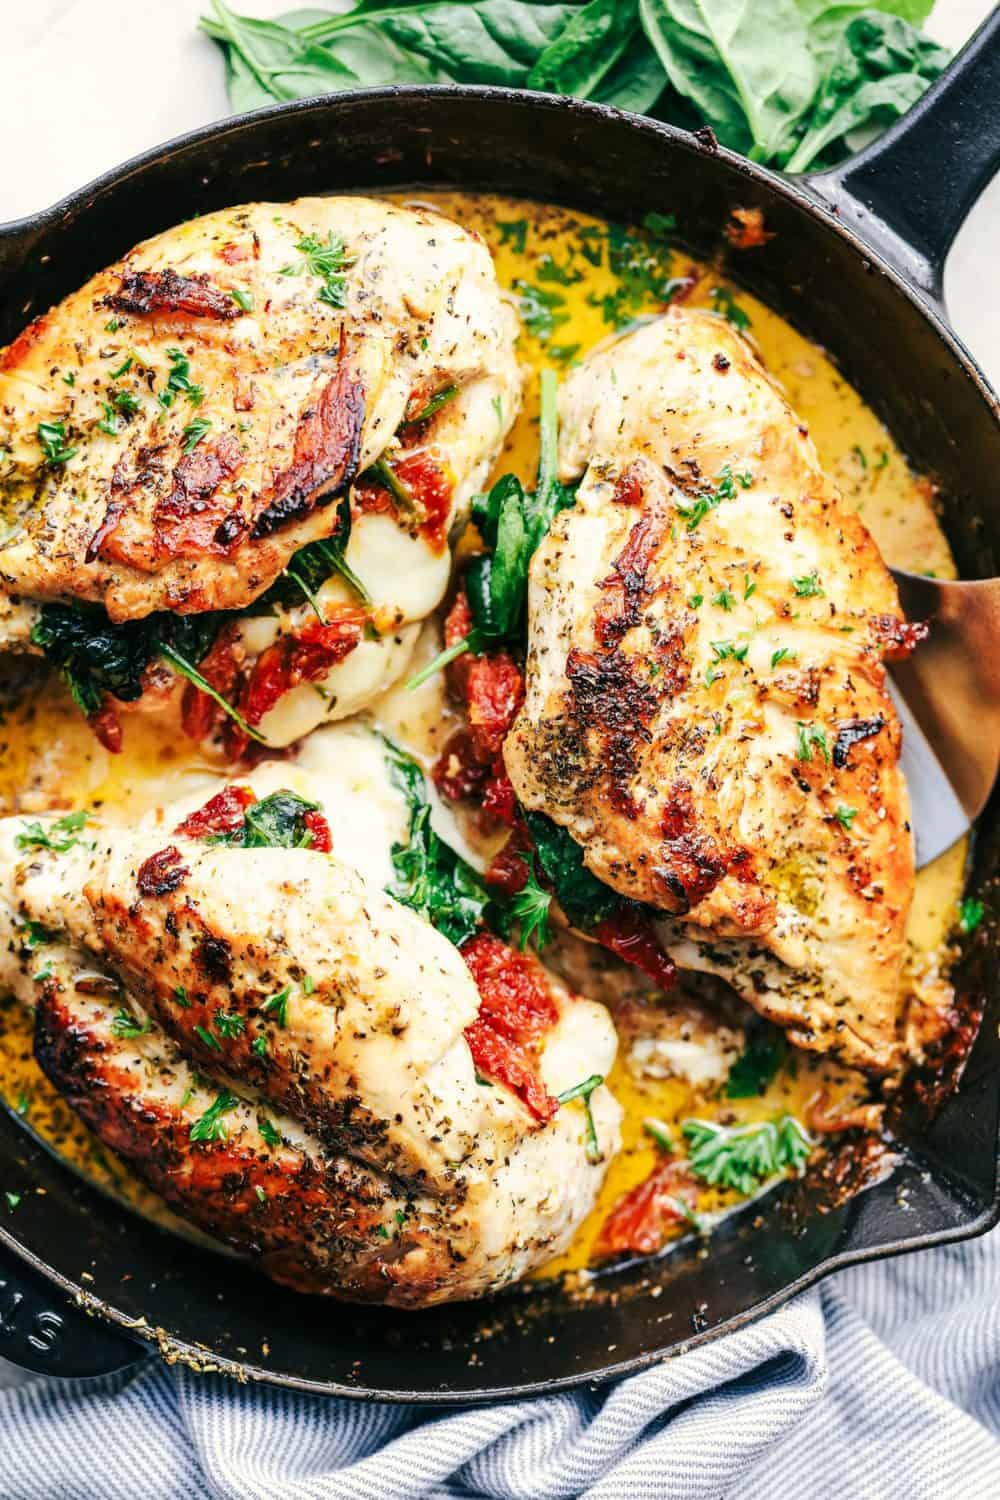 Stuffed Tuscan Garlic Chicken in a skillet.